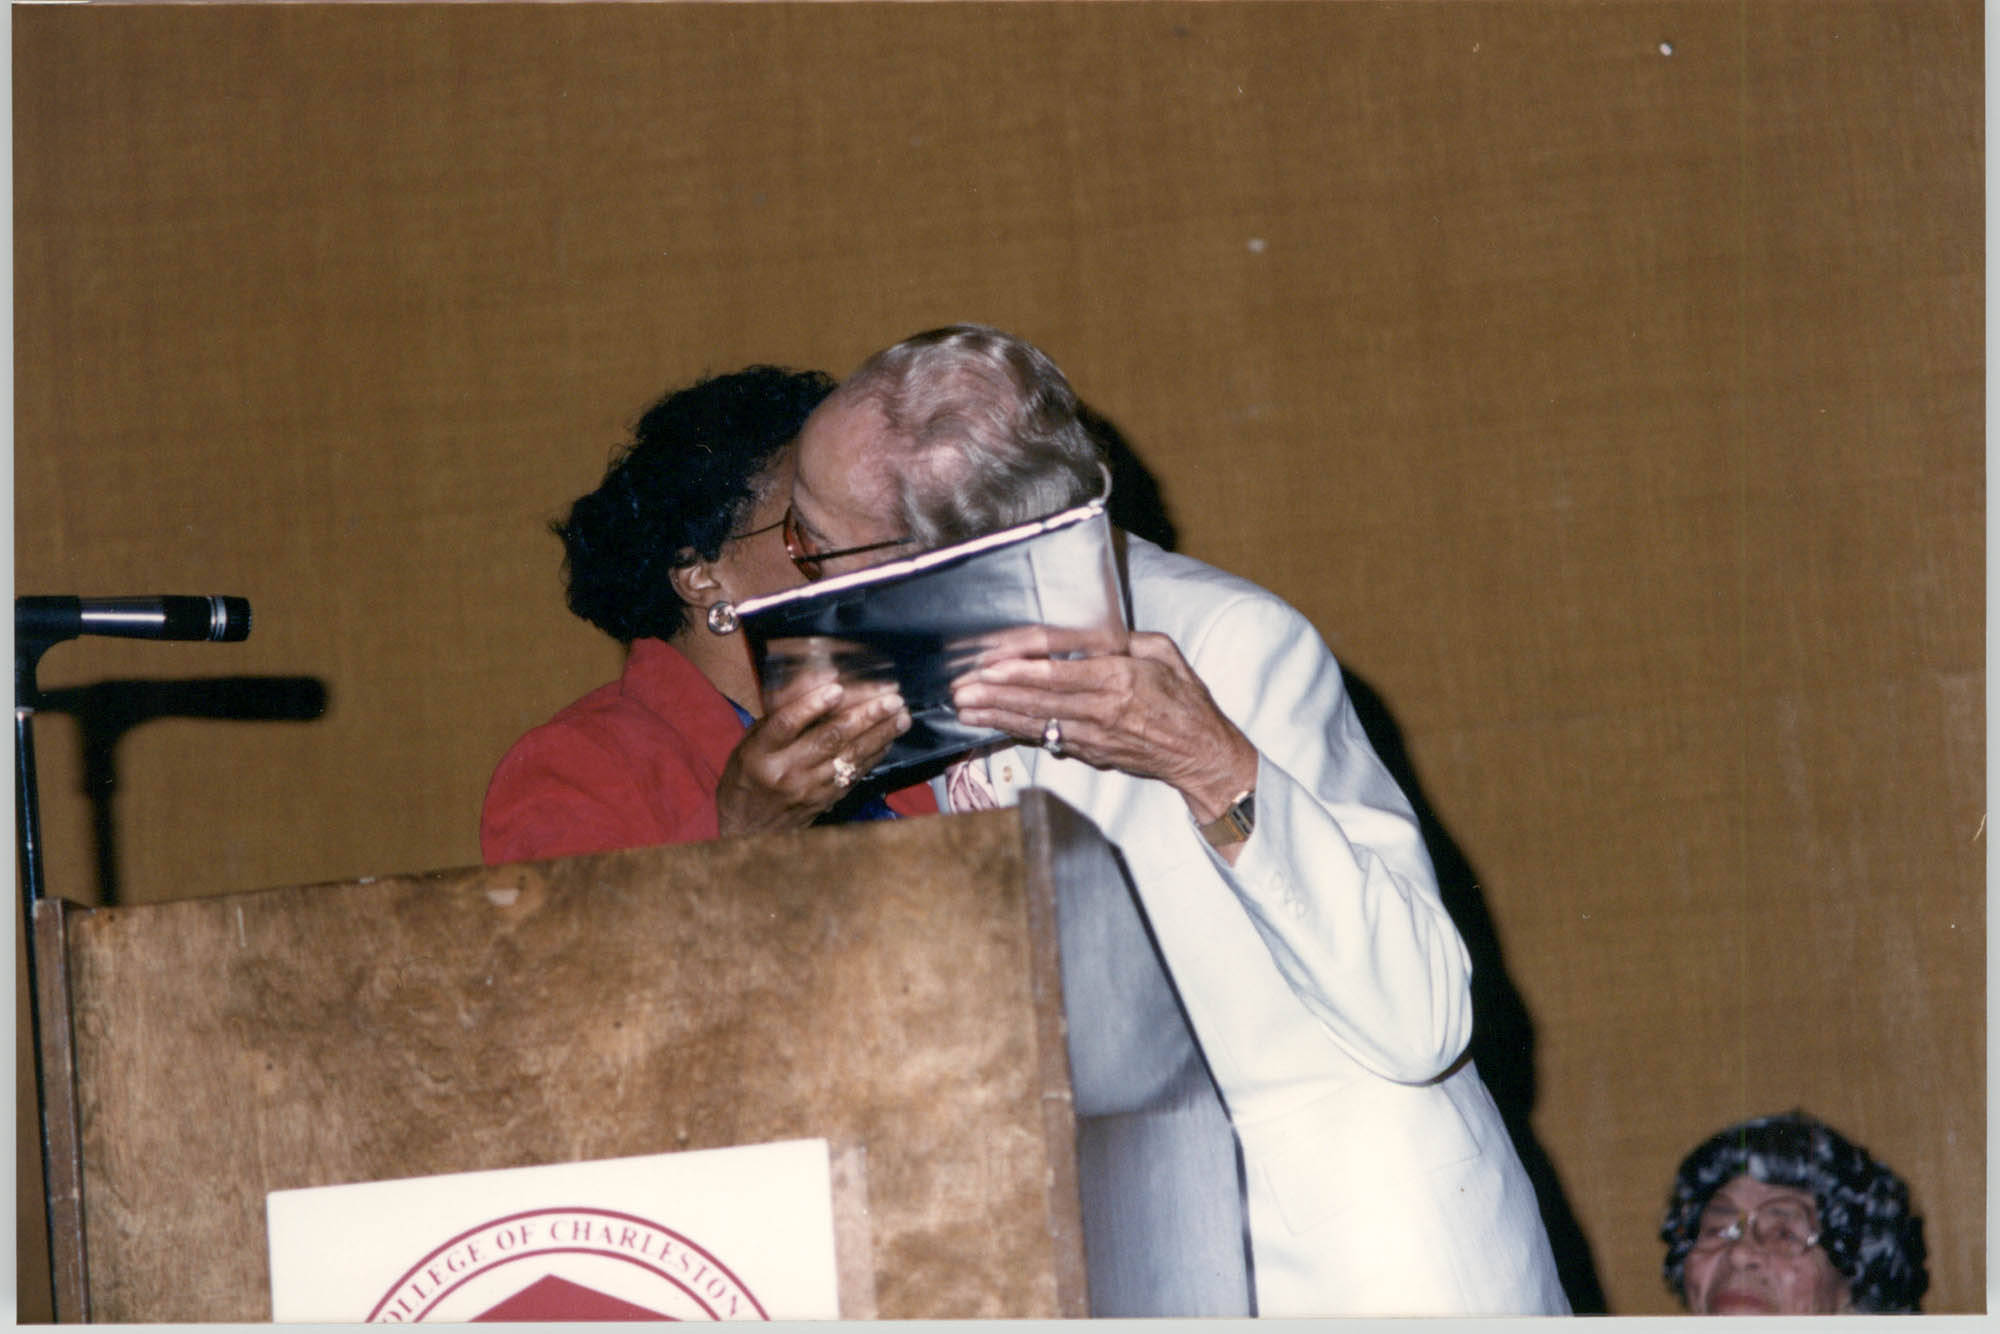 Photograph of Eugene C. Hunt and Lucille Whipper at a College of Charleston Event